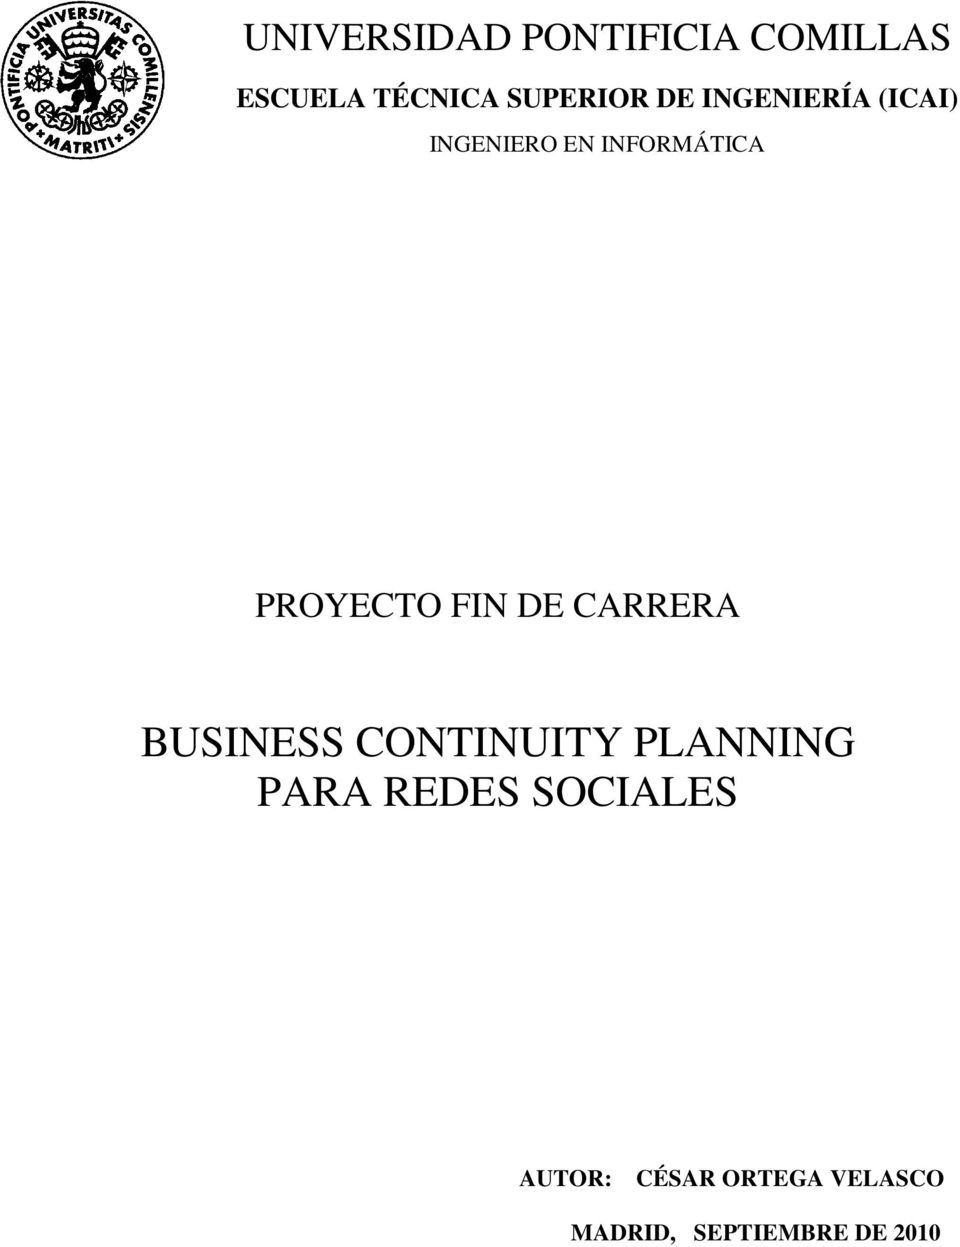 FIN DE CARRERA BUSINESS CONTINUITY PLANNING PARA REDES